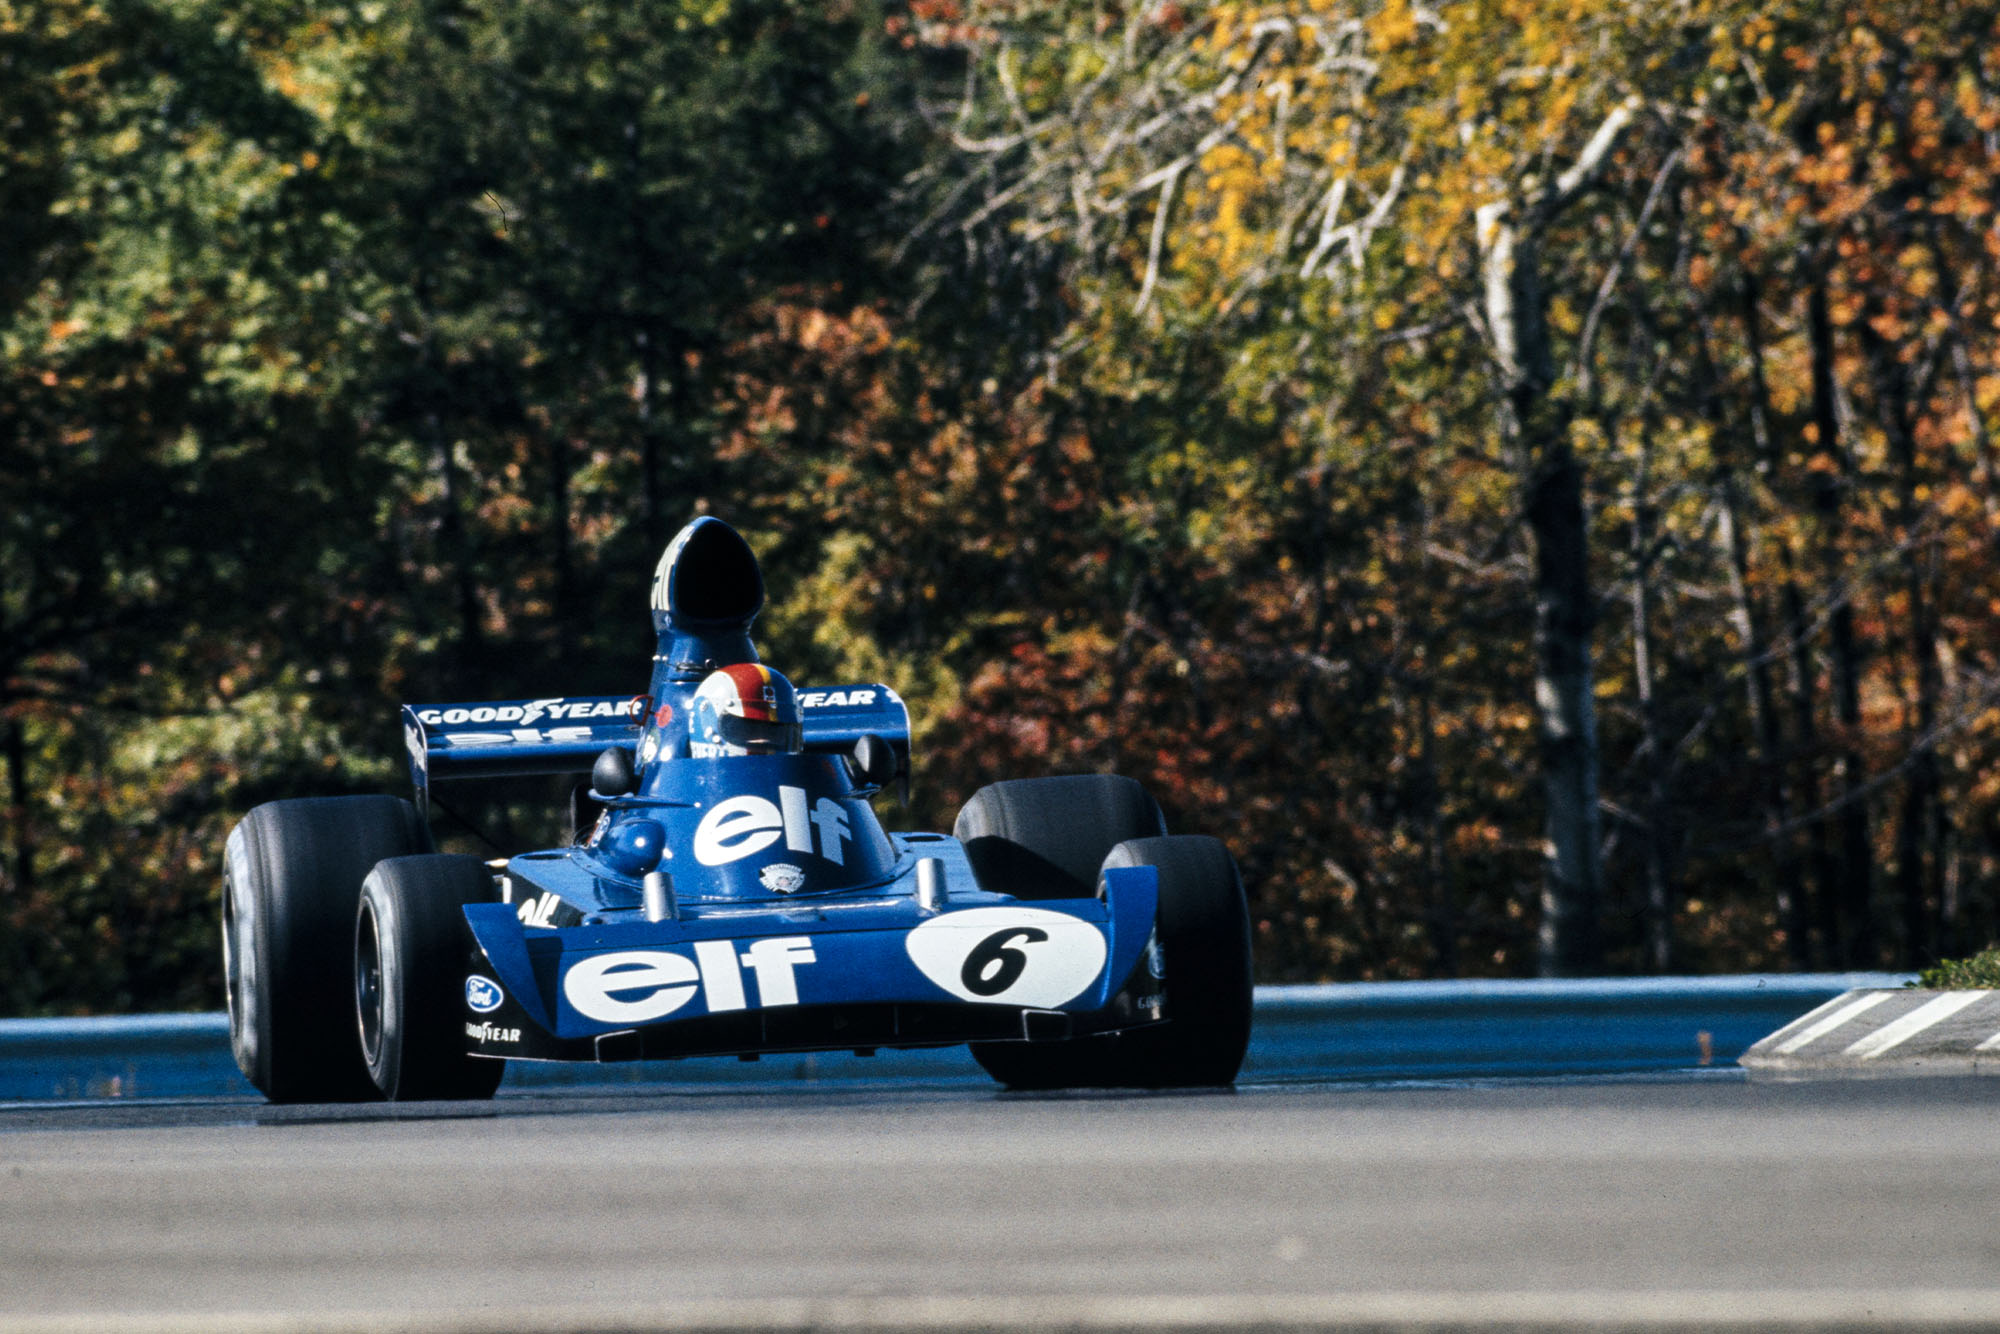 Francois Cevert driving for Tyrrell at the 1973 United States Grand Prix meeting at Watkins Glen.